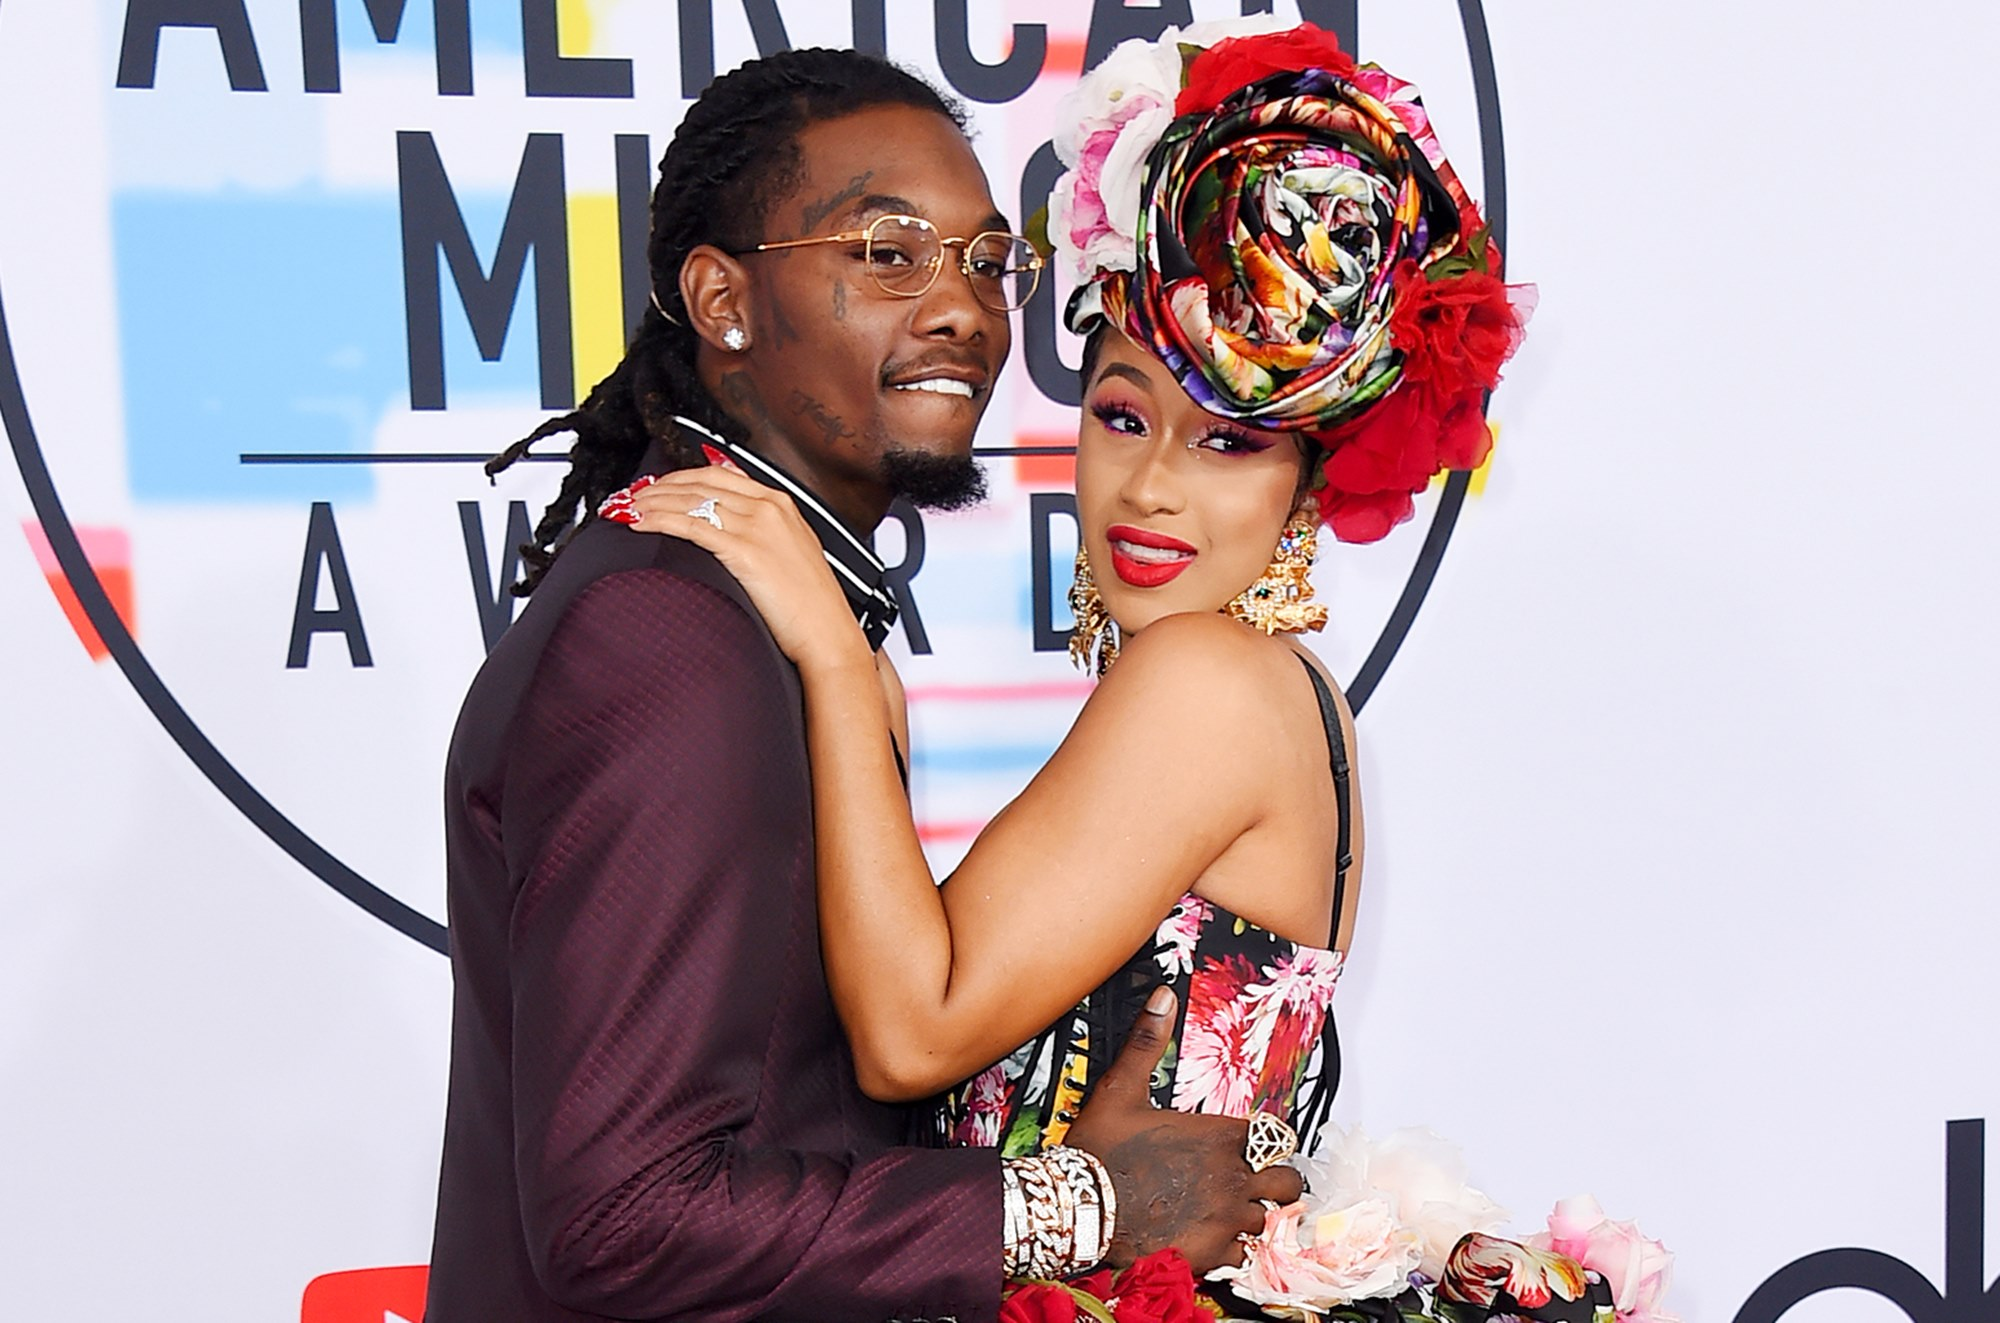 """""""cardi-b-shuts-down-the-grammy-awards-in-sheer-dreamy-gown-where-her-massive-tattoo-is-visible-photos-have-fans-saying-all-her-sins-are-forgiven-in-the-angelic-look"""""""